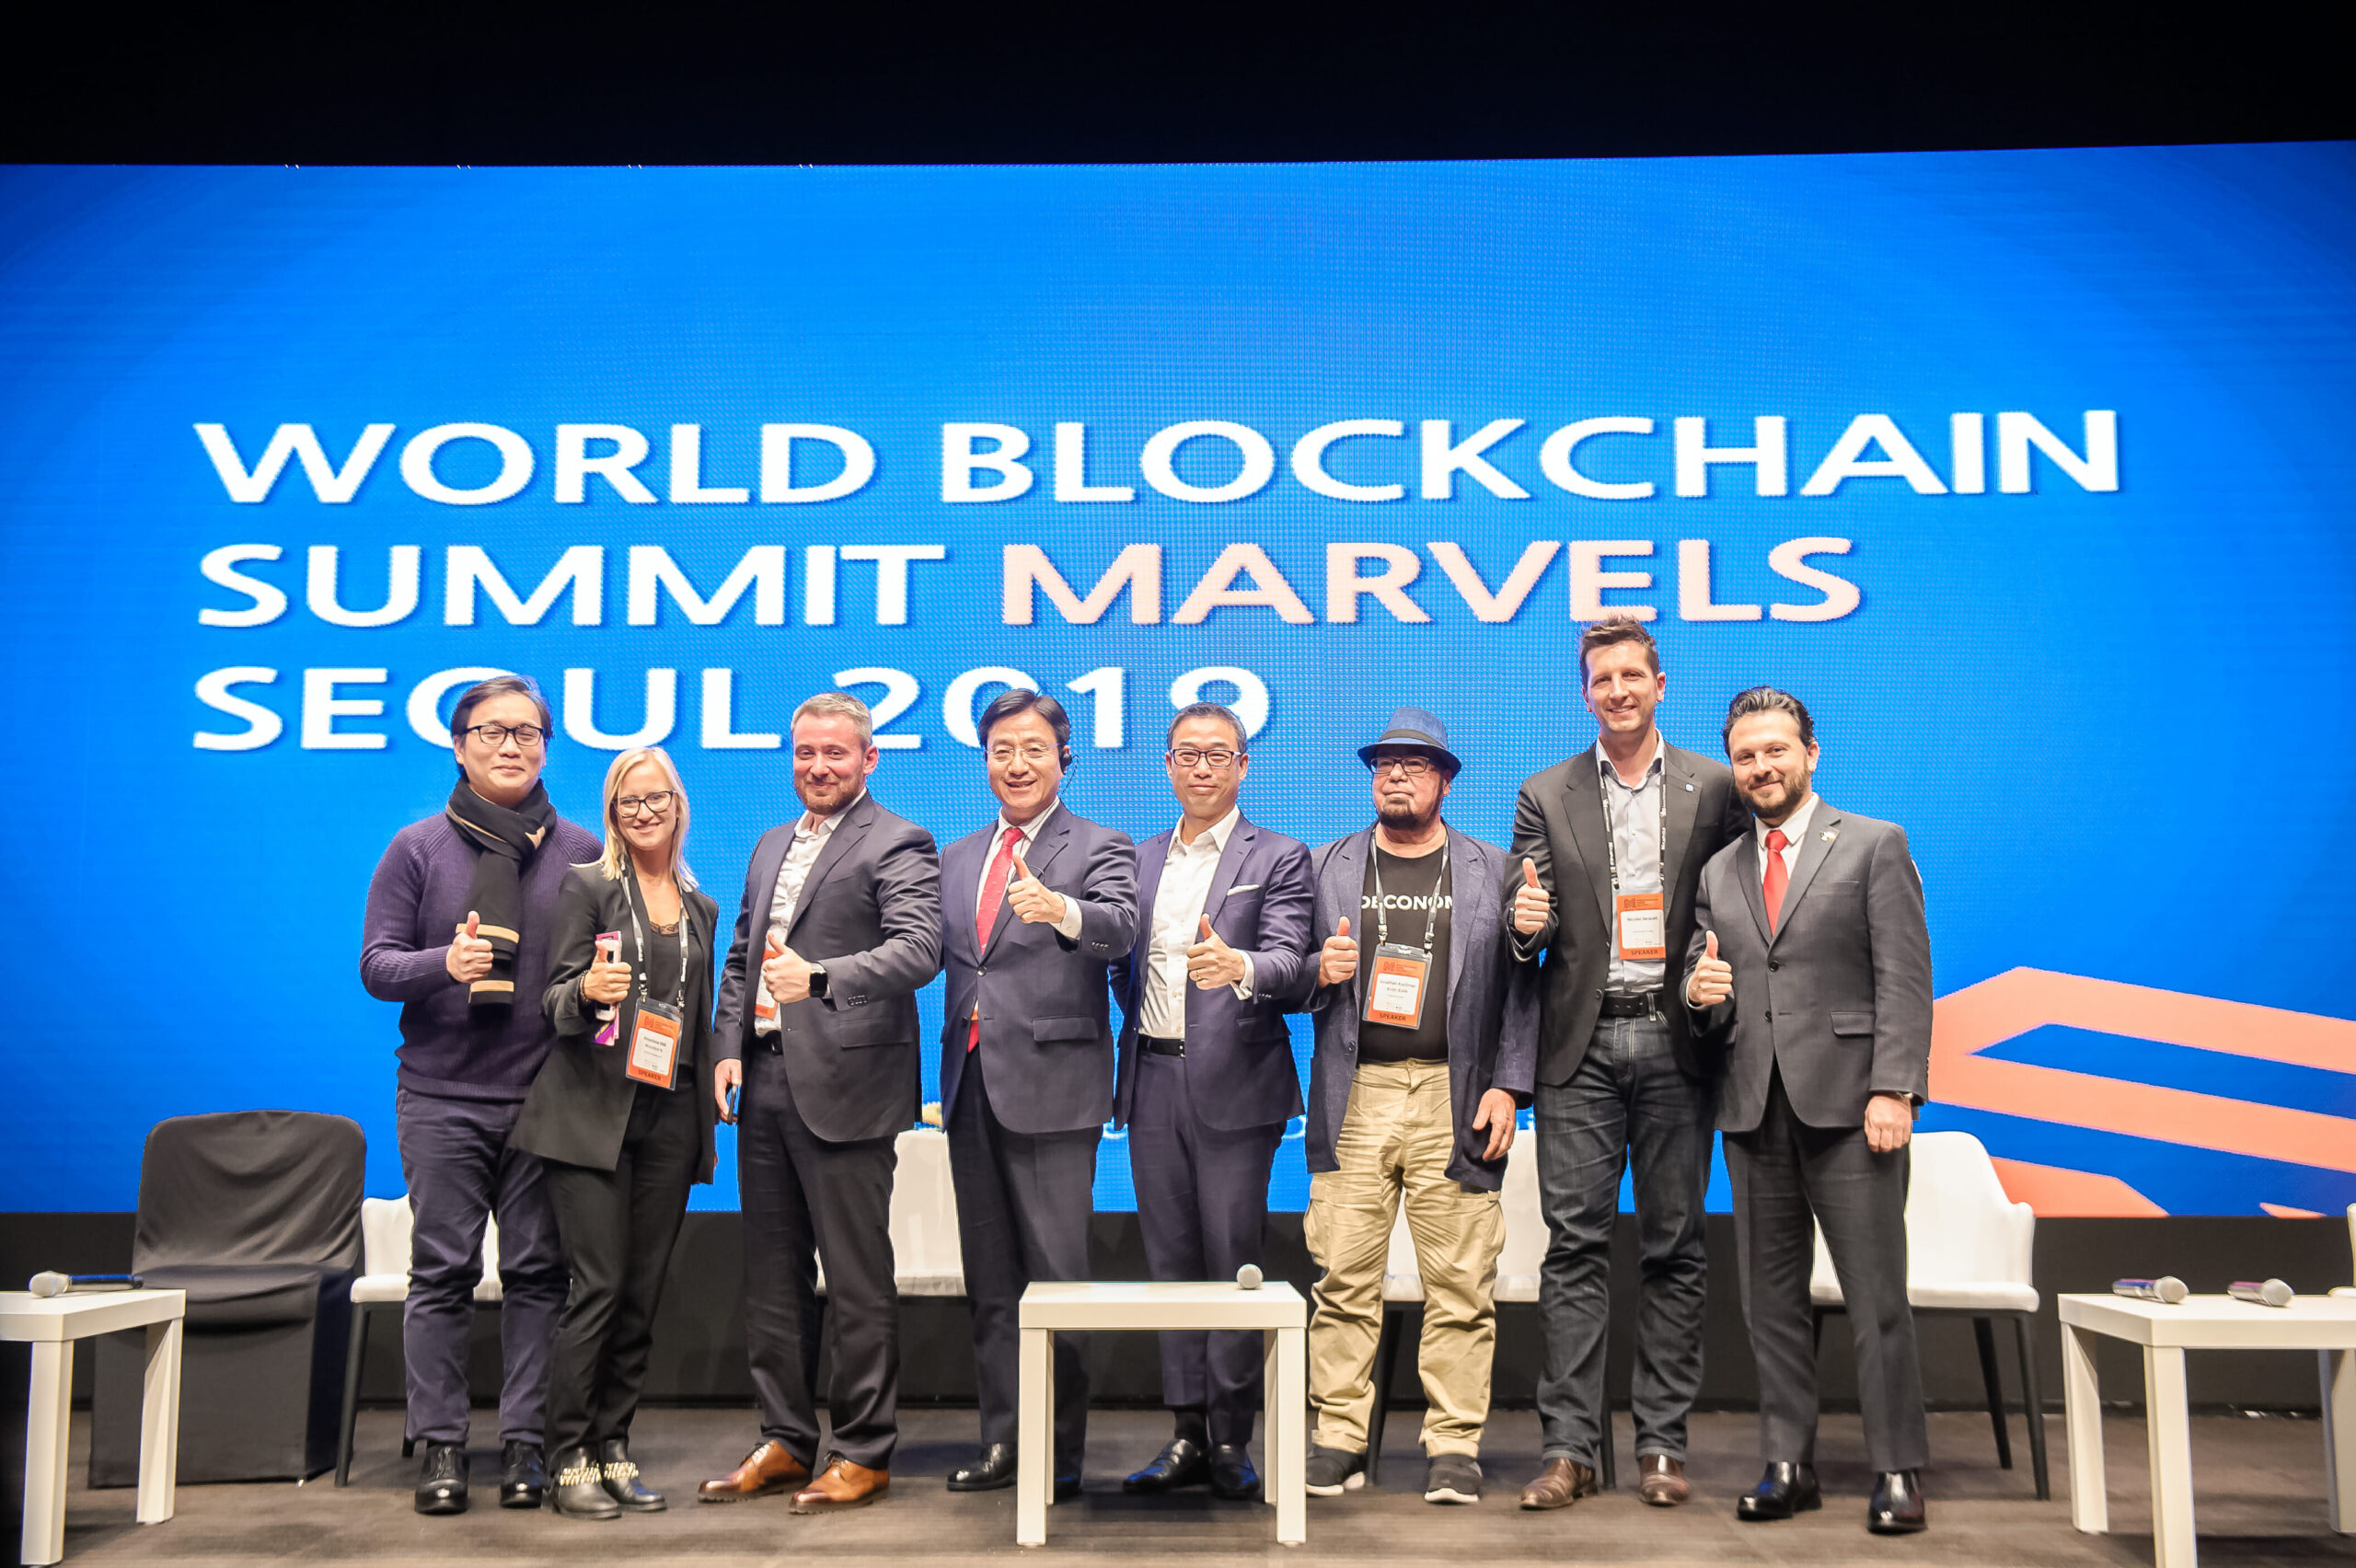 """, Learning Through Reflection: """"The Future of Blockchain is in Our Hands"""", Blockchain Adviser for Inter-Governmental Organisation   Book Author   Investor   Board Member"""